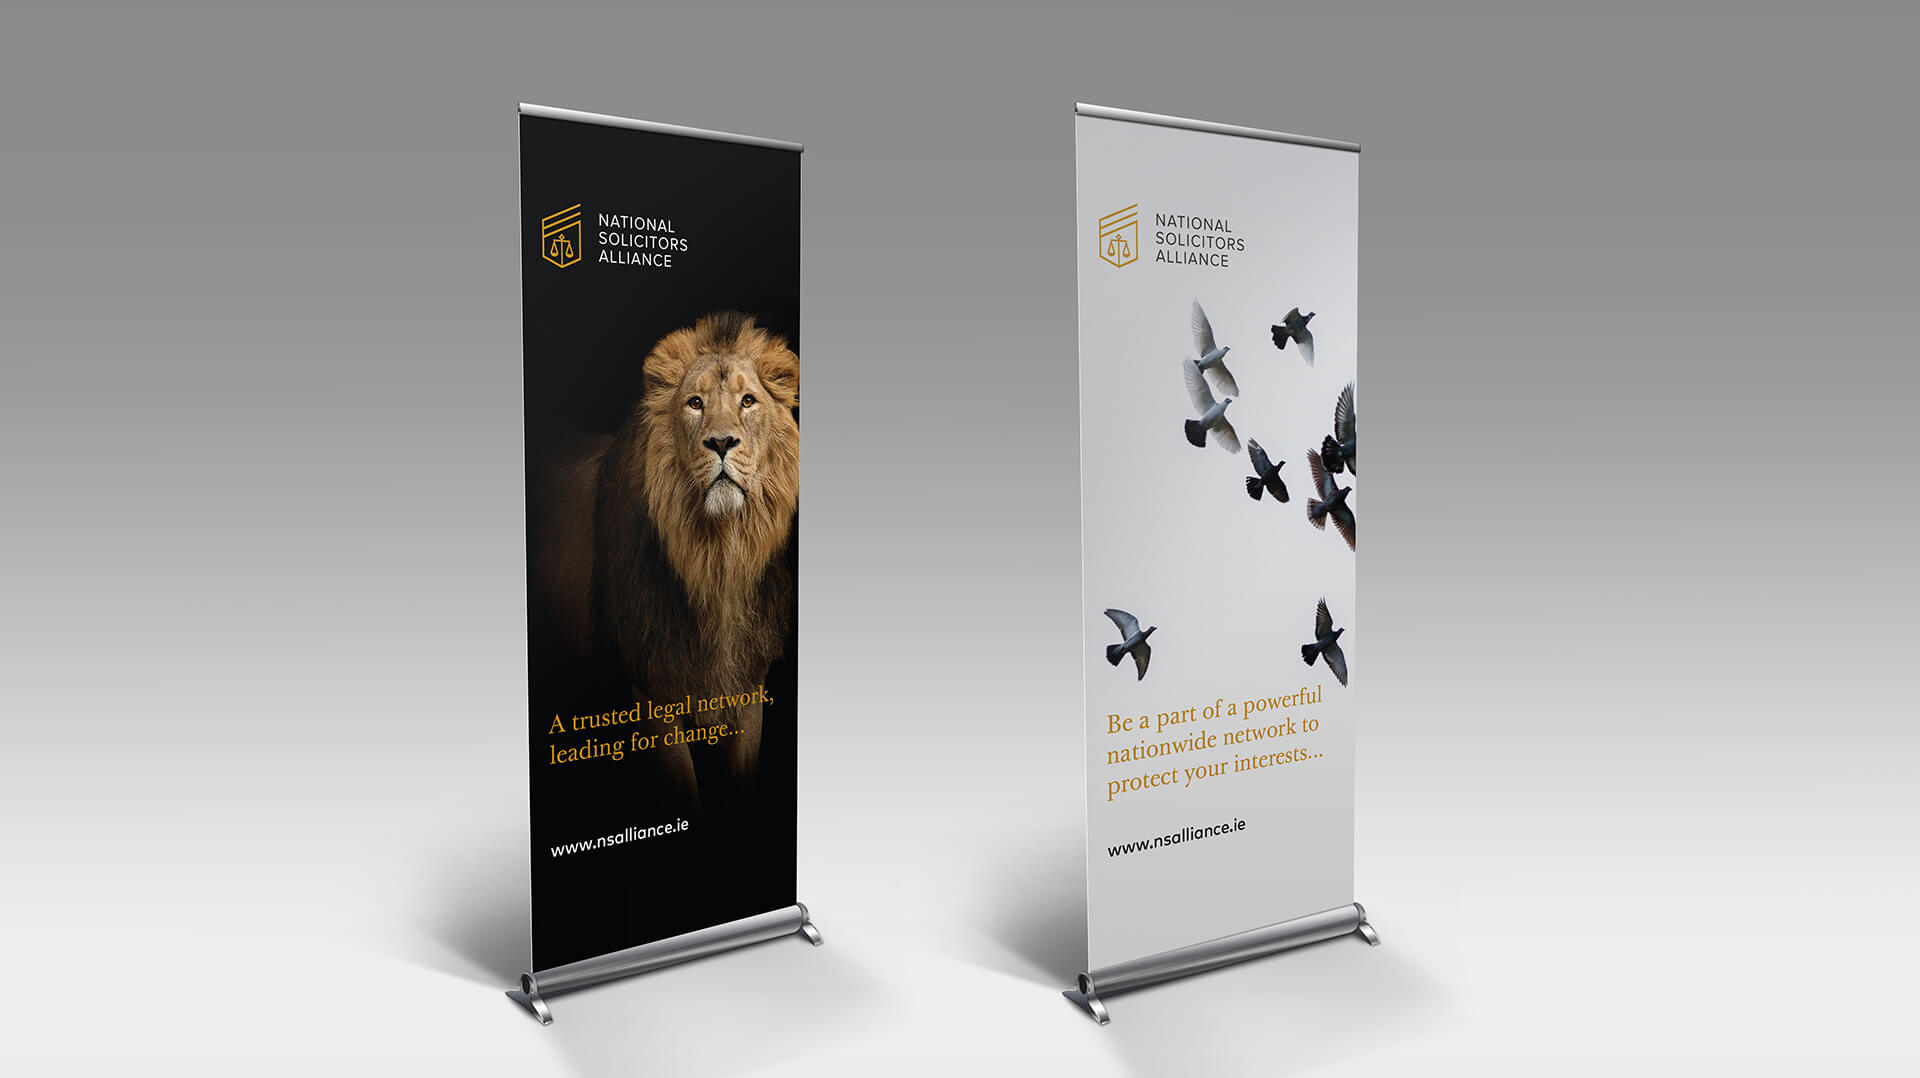 National Solicitors Alliance pullup banners